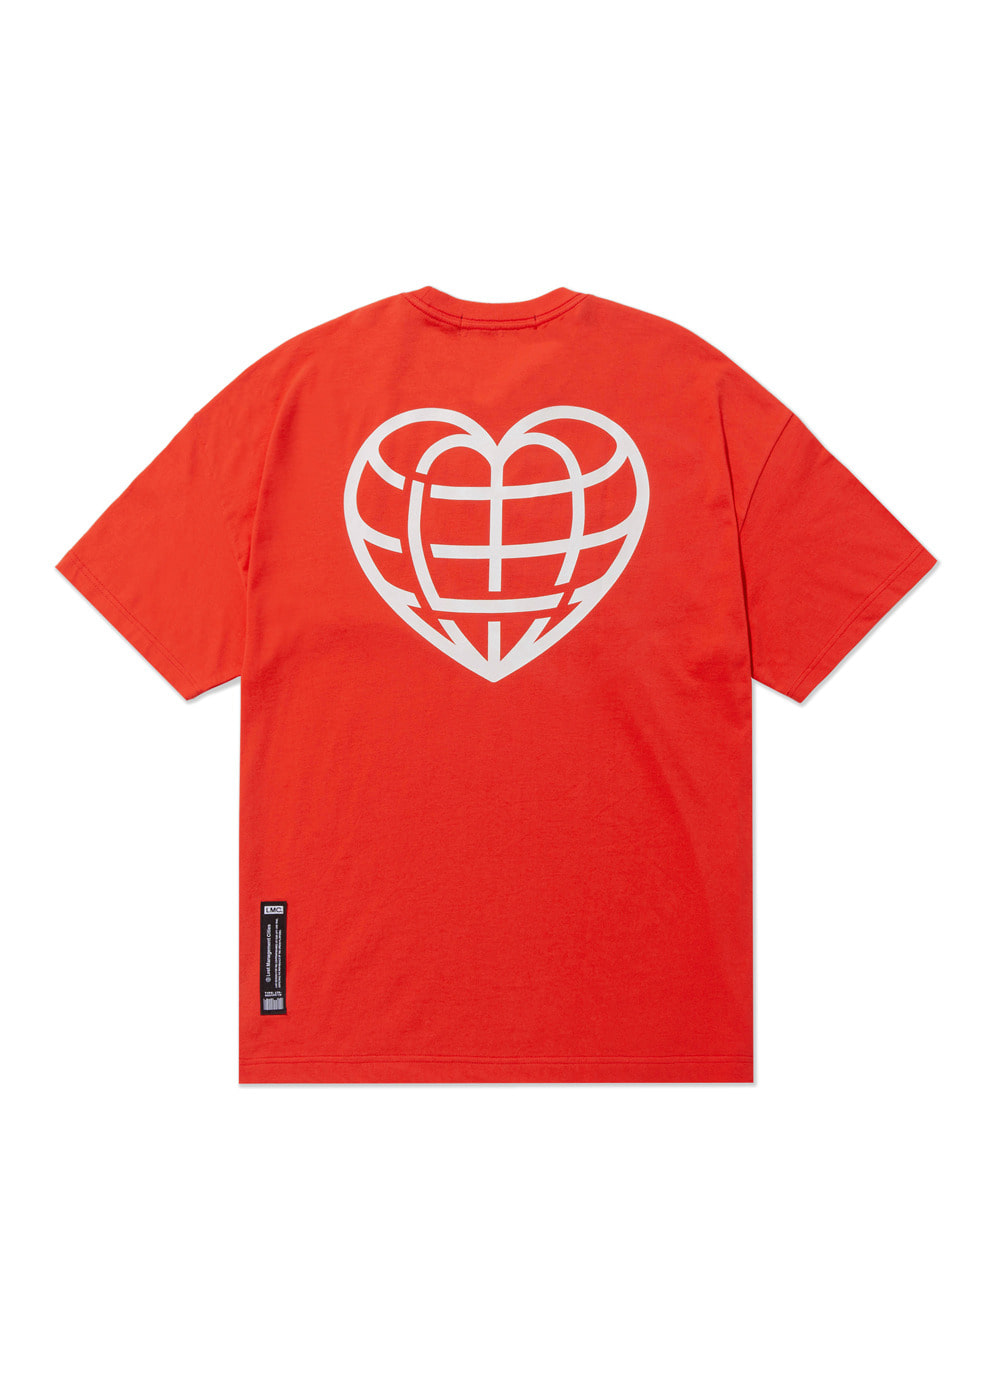 LMC HEART GLOBE OVERSIZED TEE red